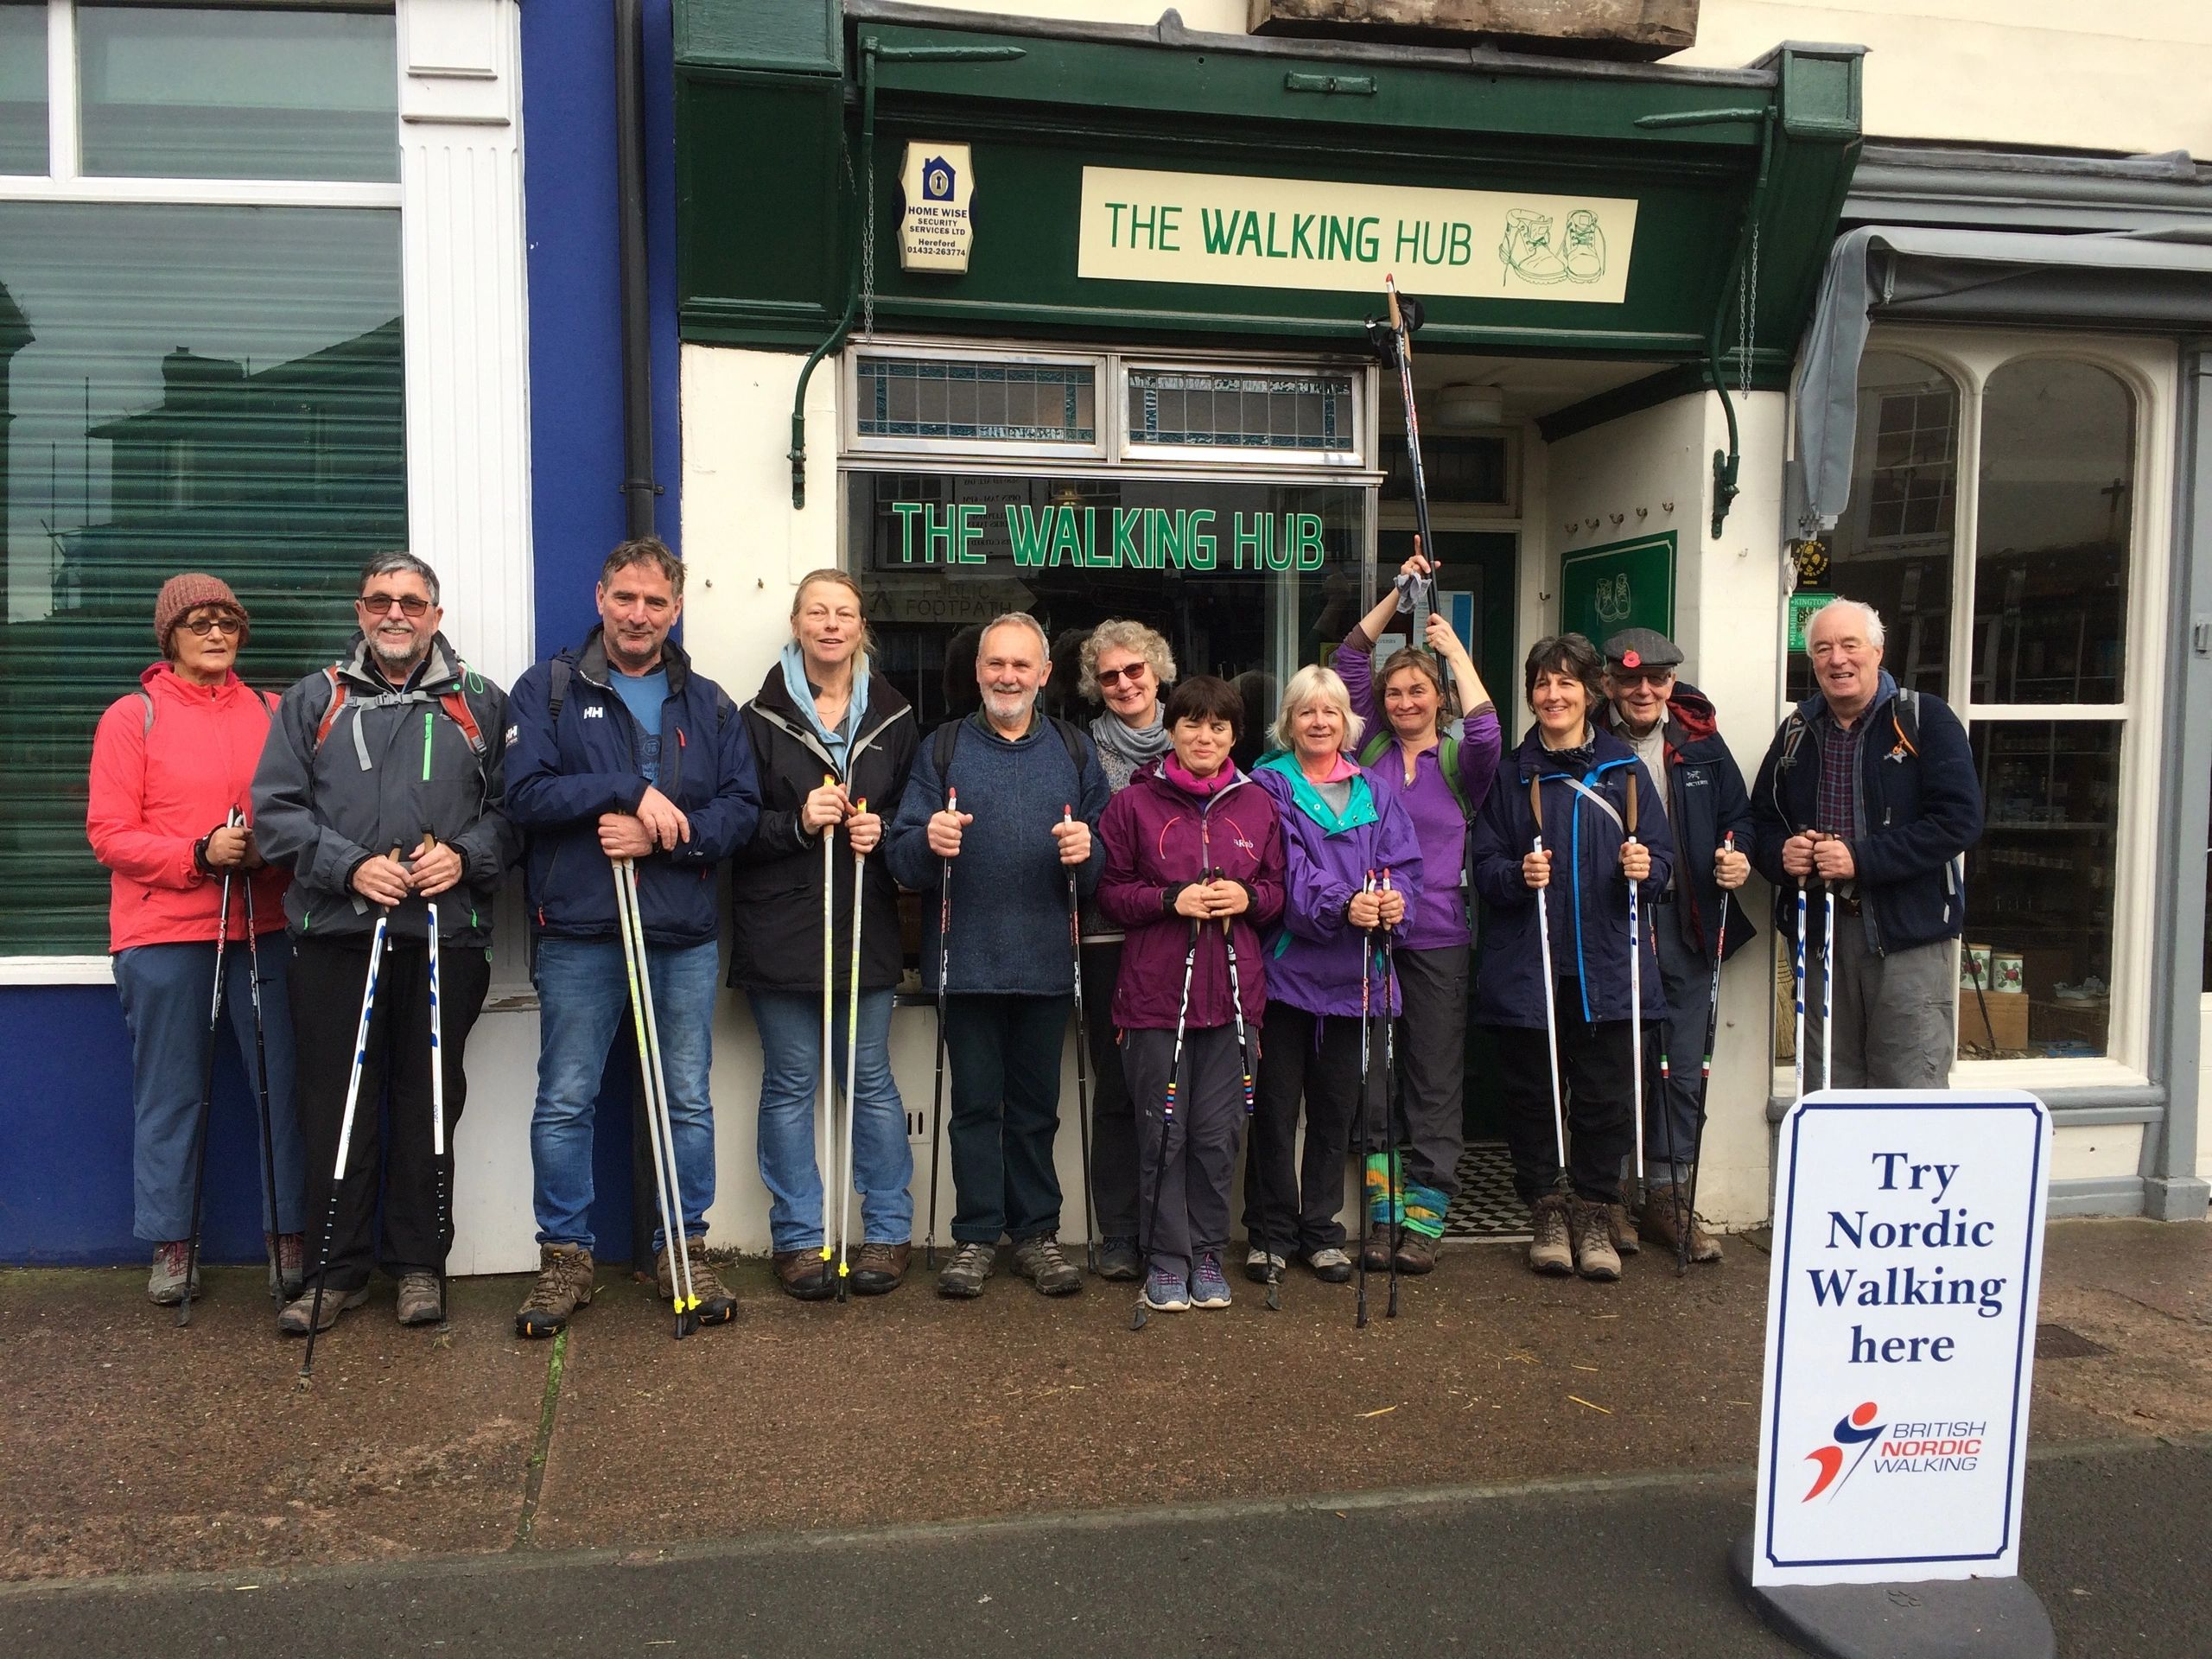 A group of Nordic walkers outside The Walking Hub in Kington on Offa's Dyke Trail